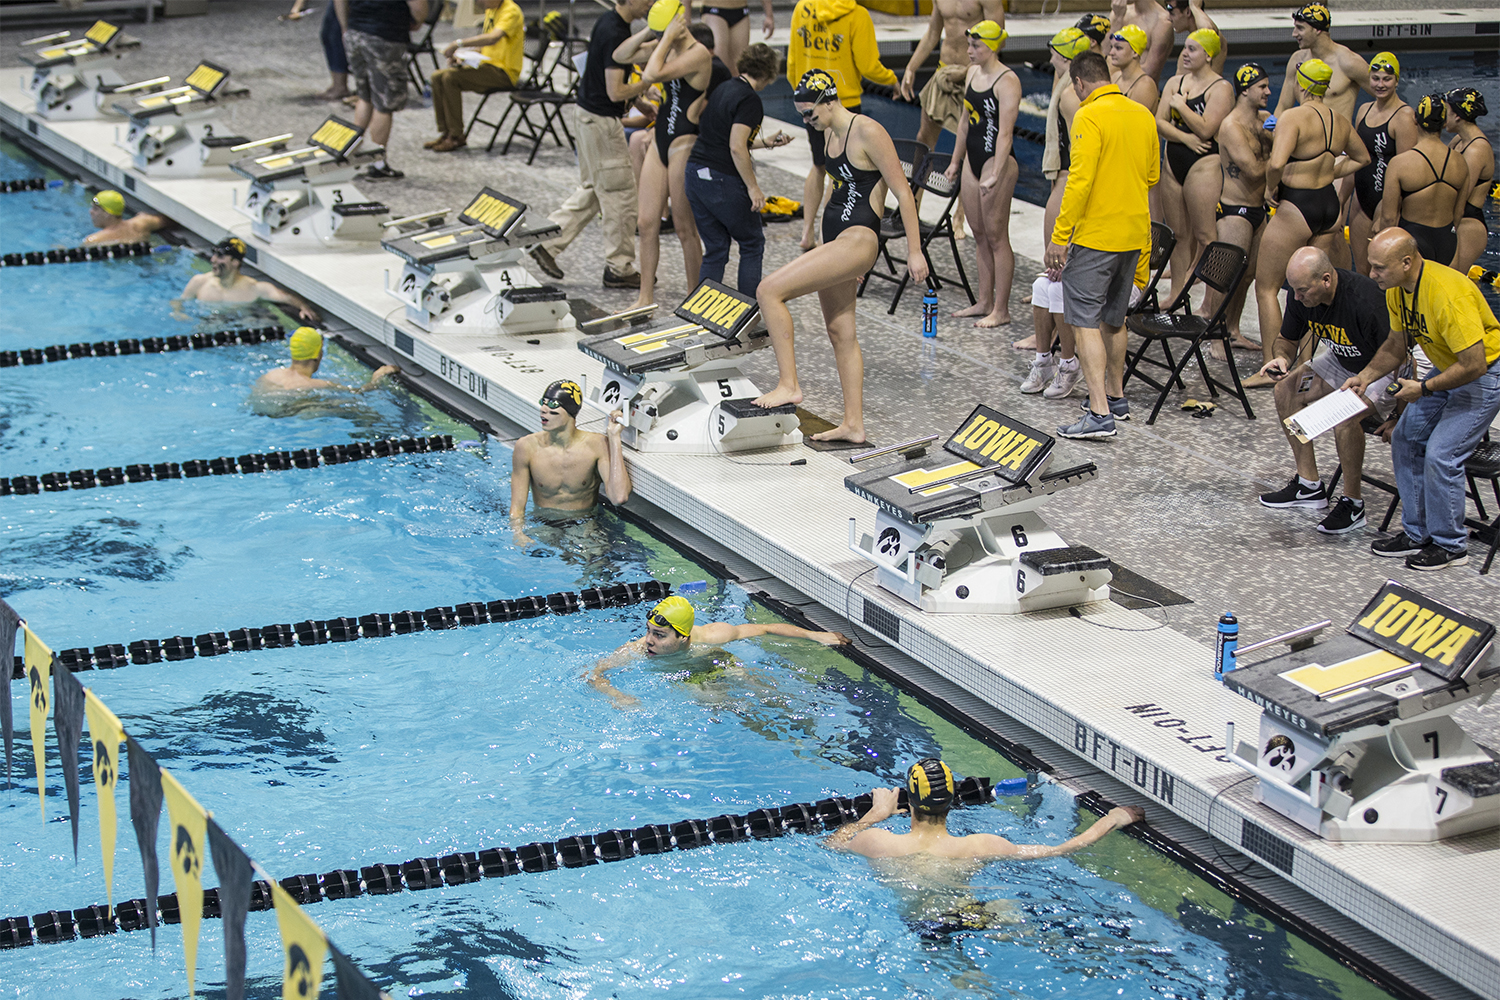 Swimmers+look+to+the+board+to+see+their+times+during+the+Iowa+Swimming+and+Diving+Intrasquad+Meet+at+the+Campus+Recreation+and+Wellness+Center+on+Saturday%2C+Sept.+29%2C+2018.+